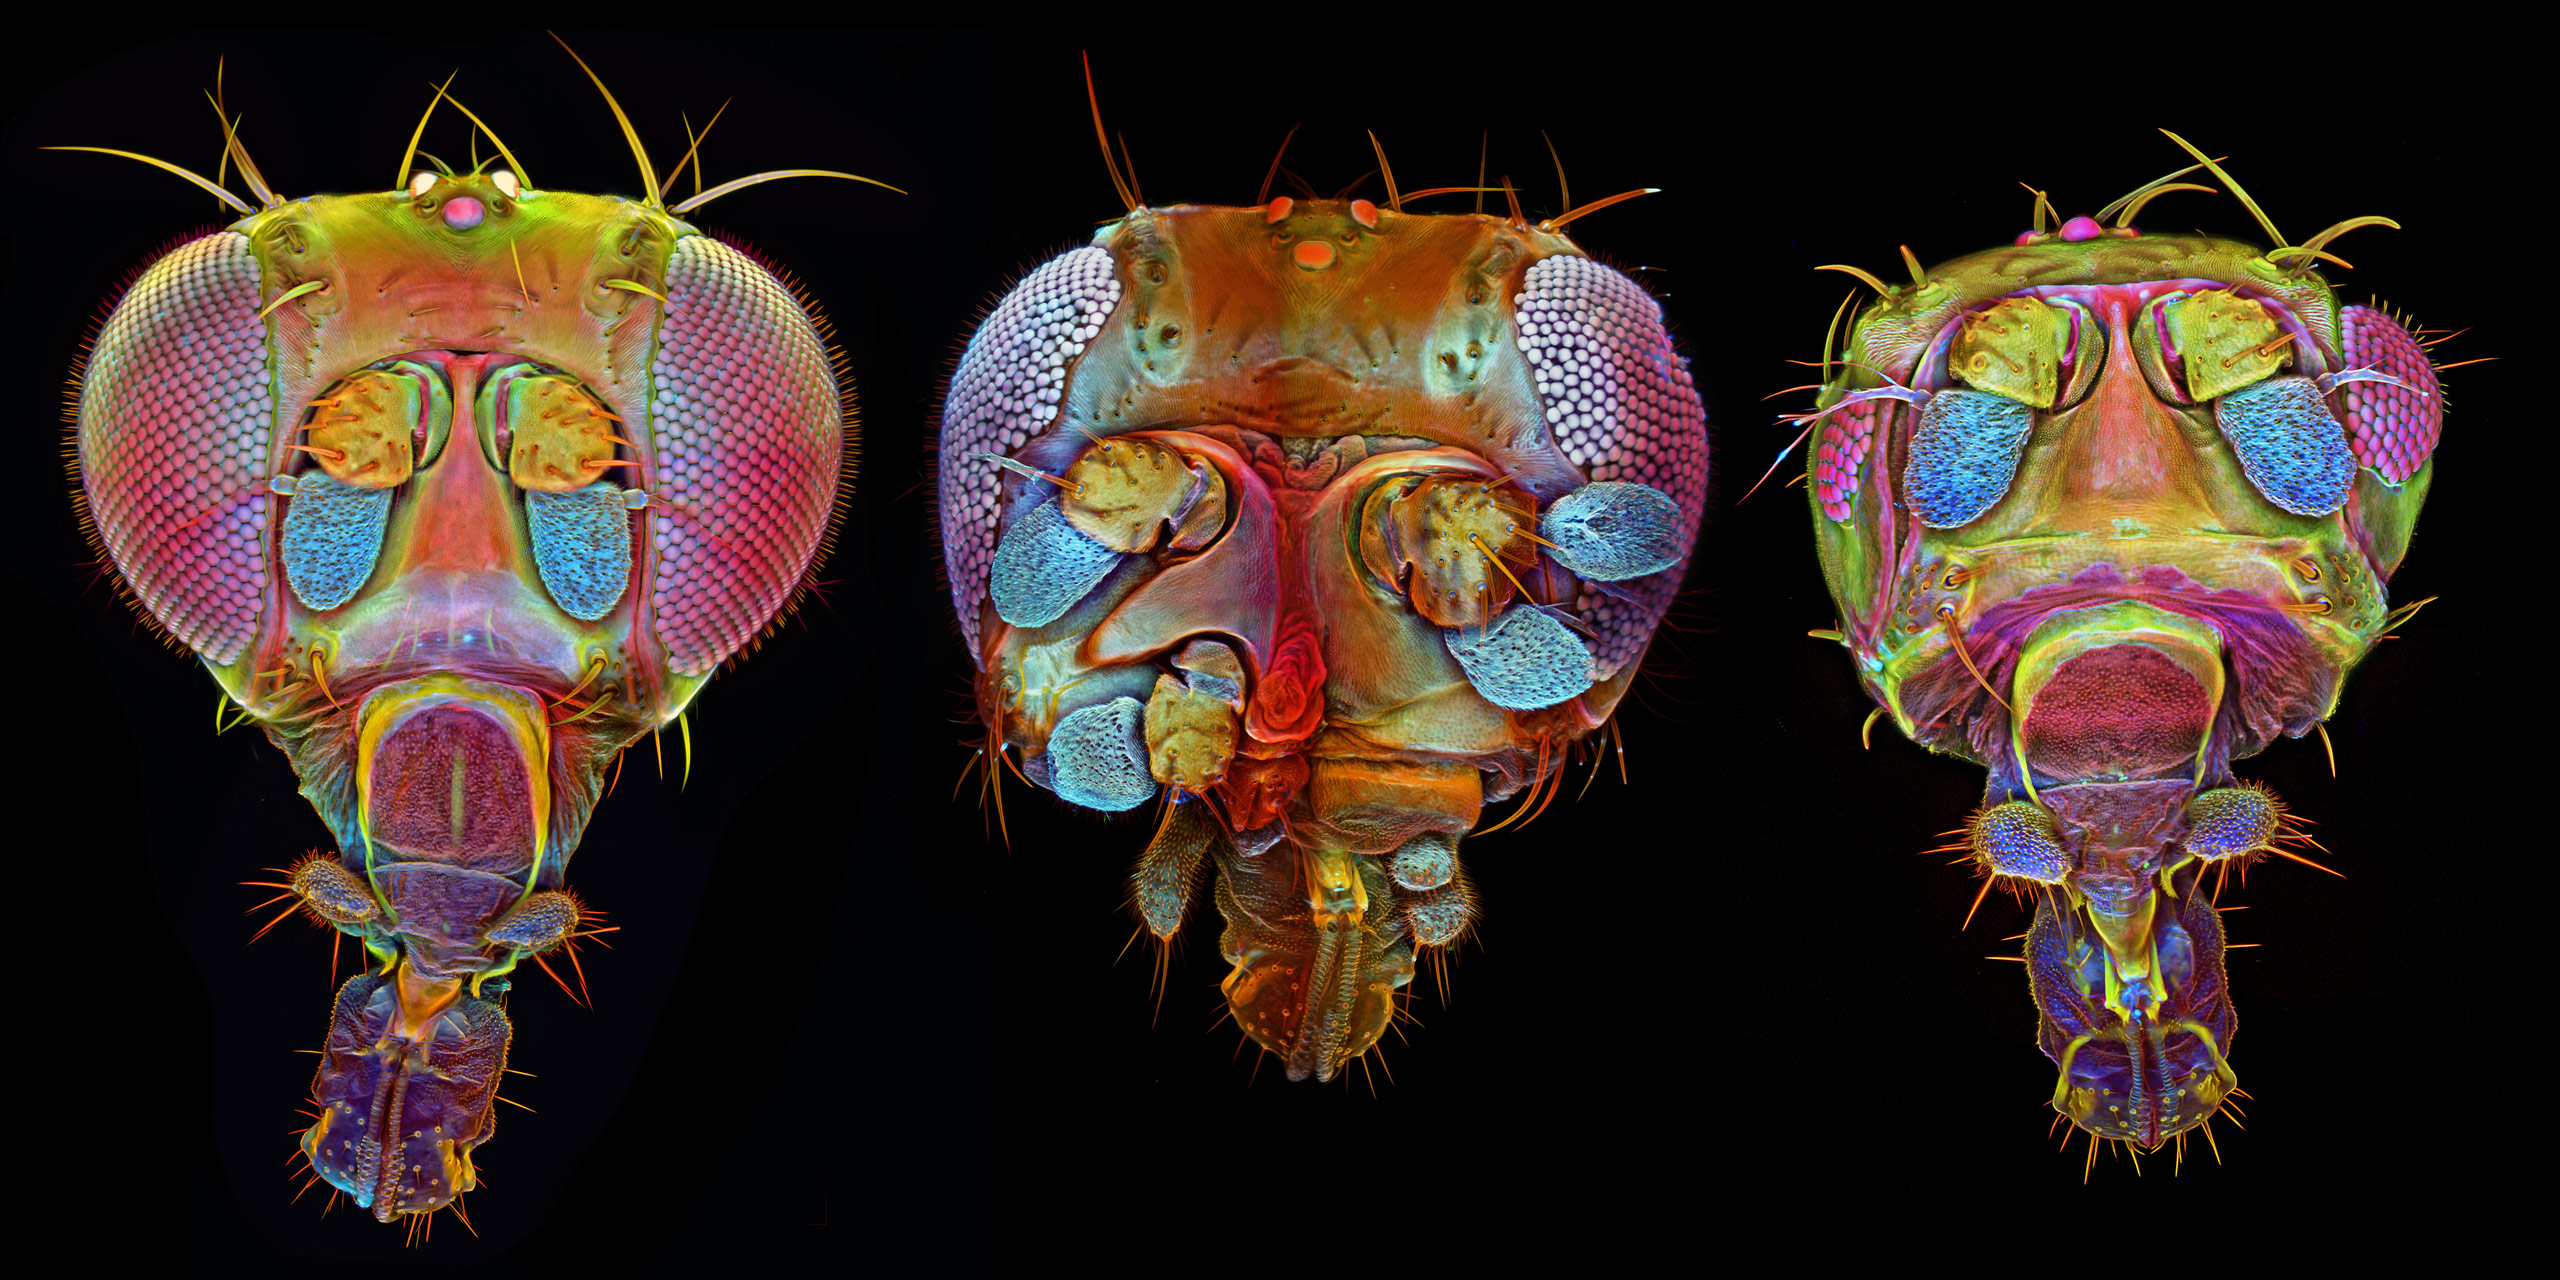 Drosophila (fruit fly) with mutant variations (middle and right images)